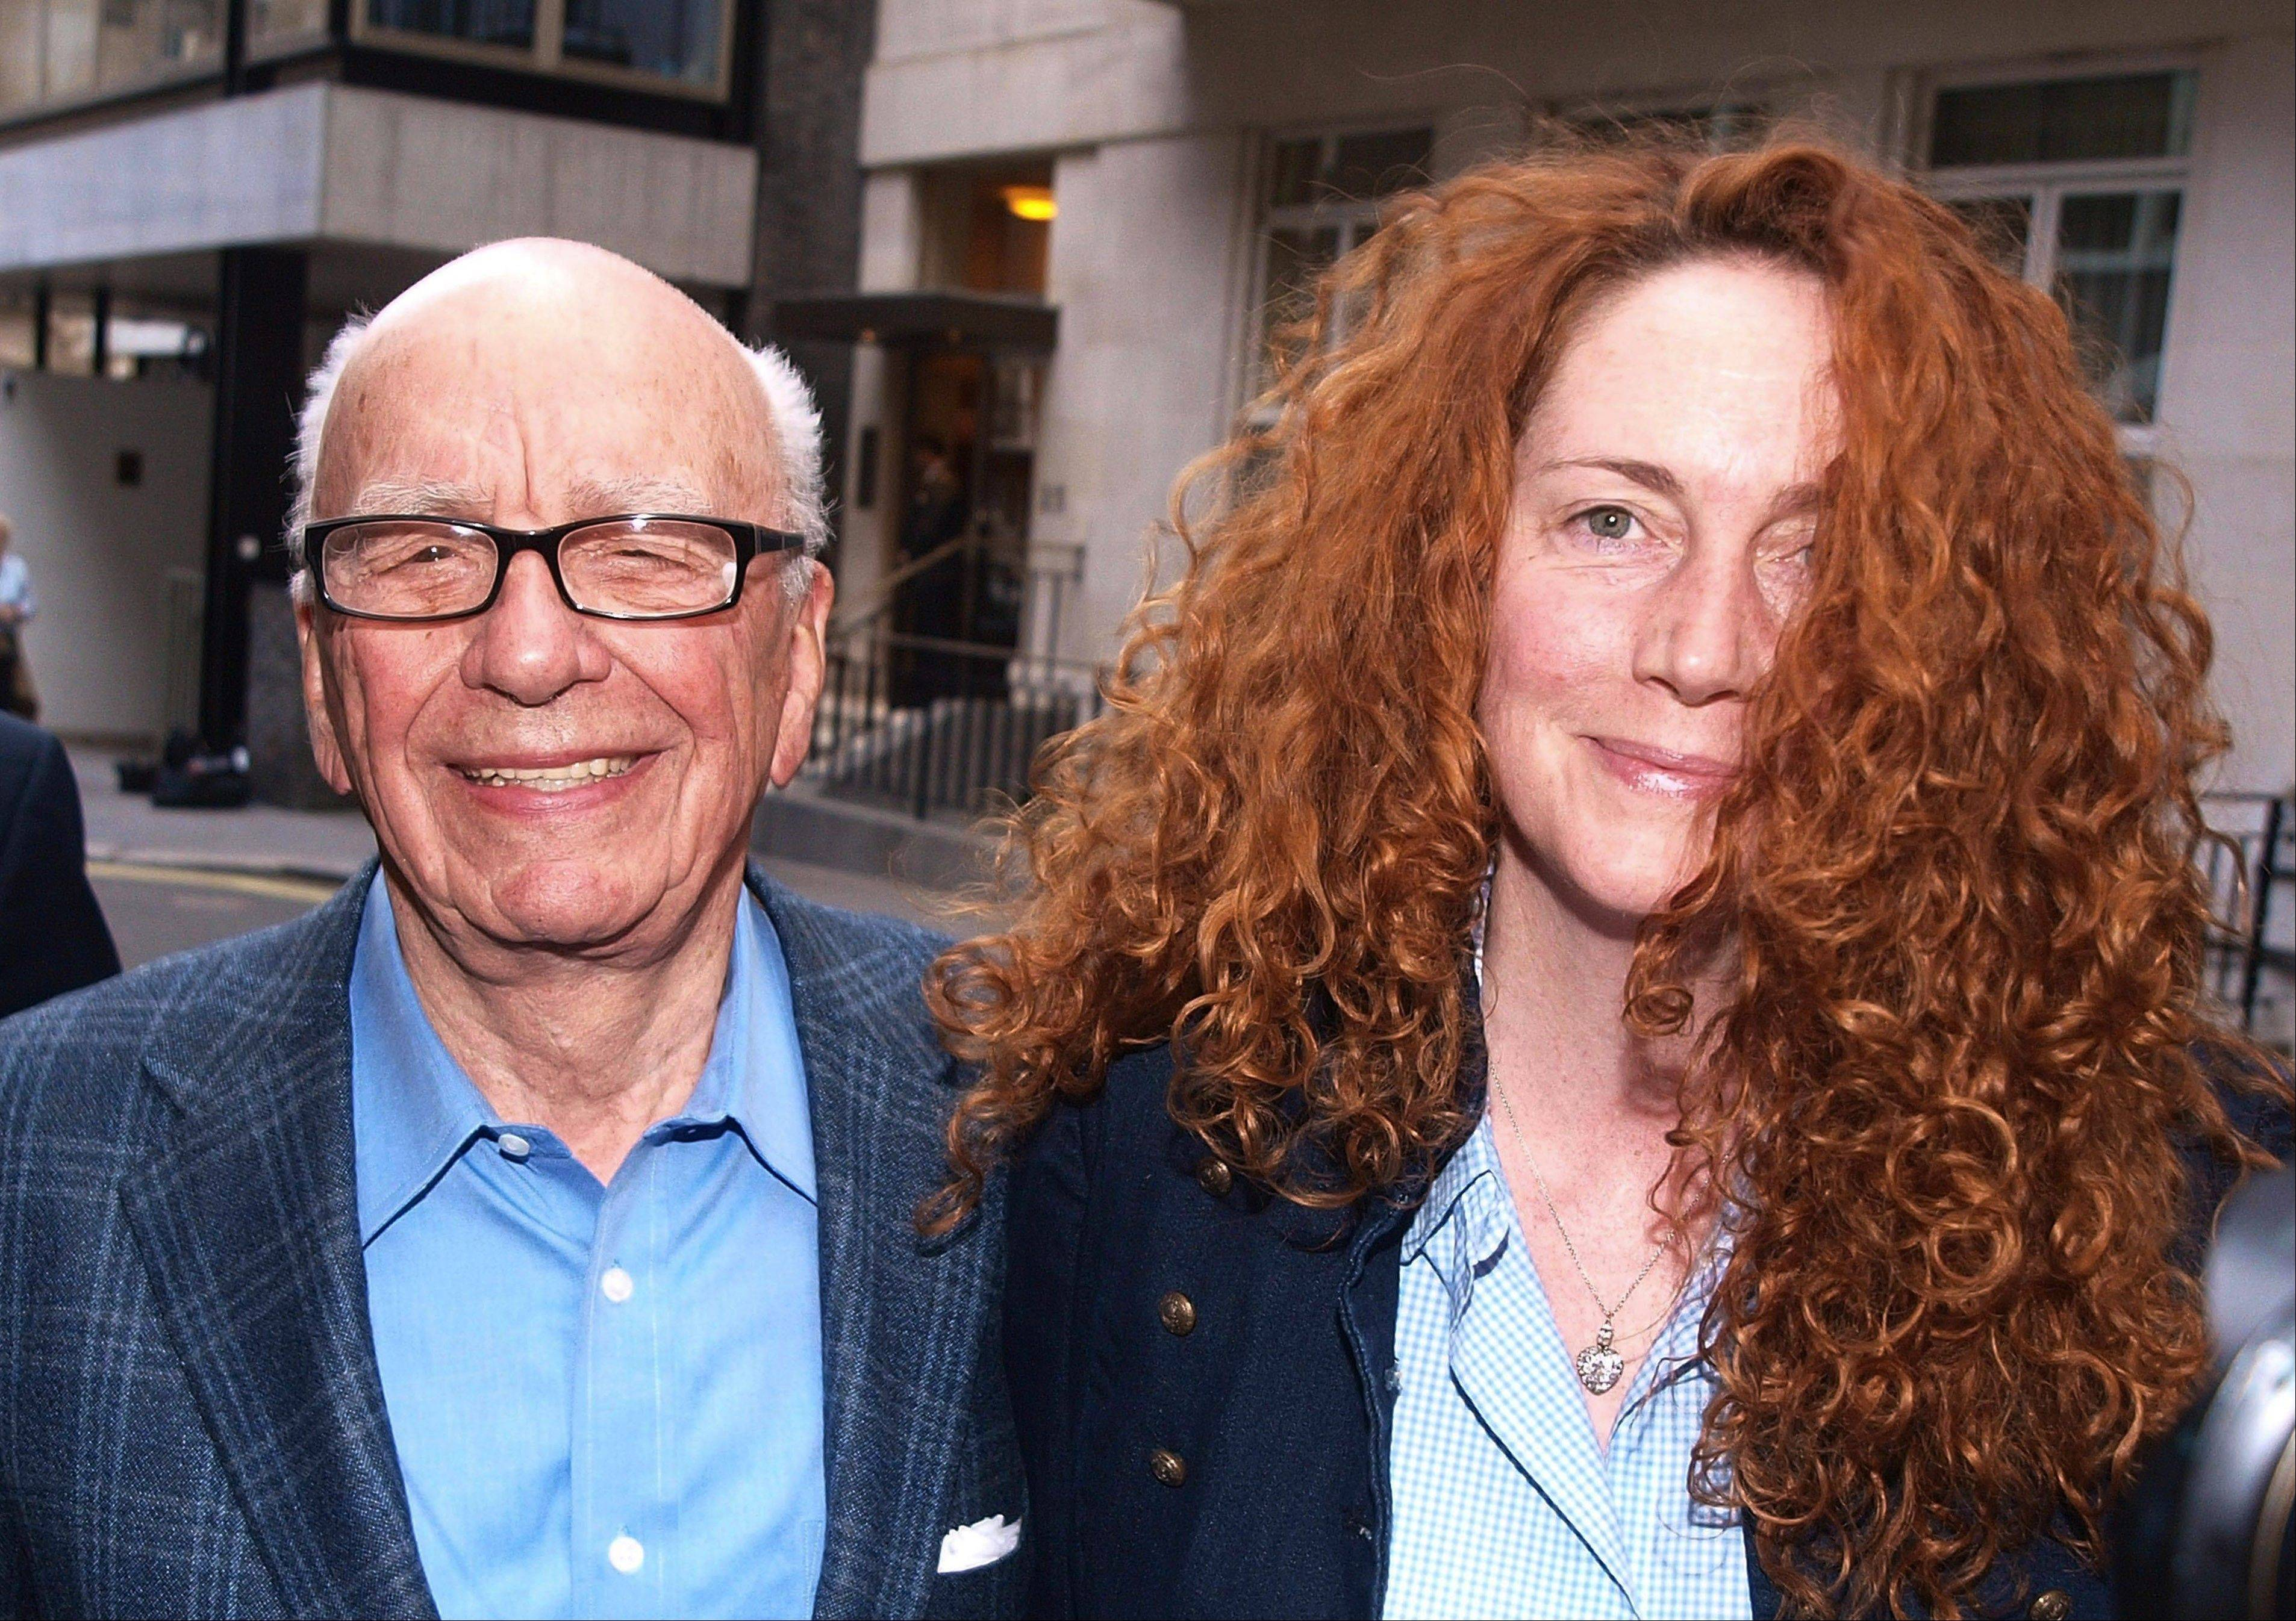 Chairman of News Corporation Rupert Murdoch, left, and Chief Executive of News International Rebekah Brooks met in London on Sunday -- the day on which Britain's tabloid newspaper News of the World ceased publication.